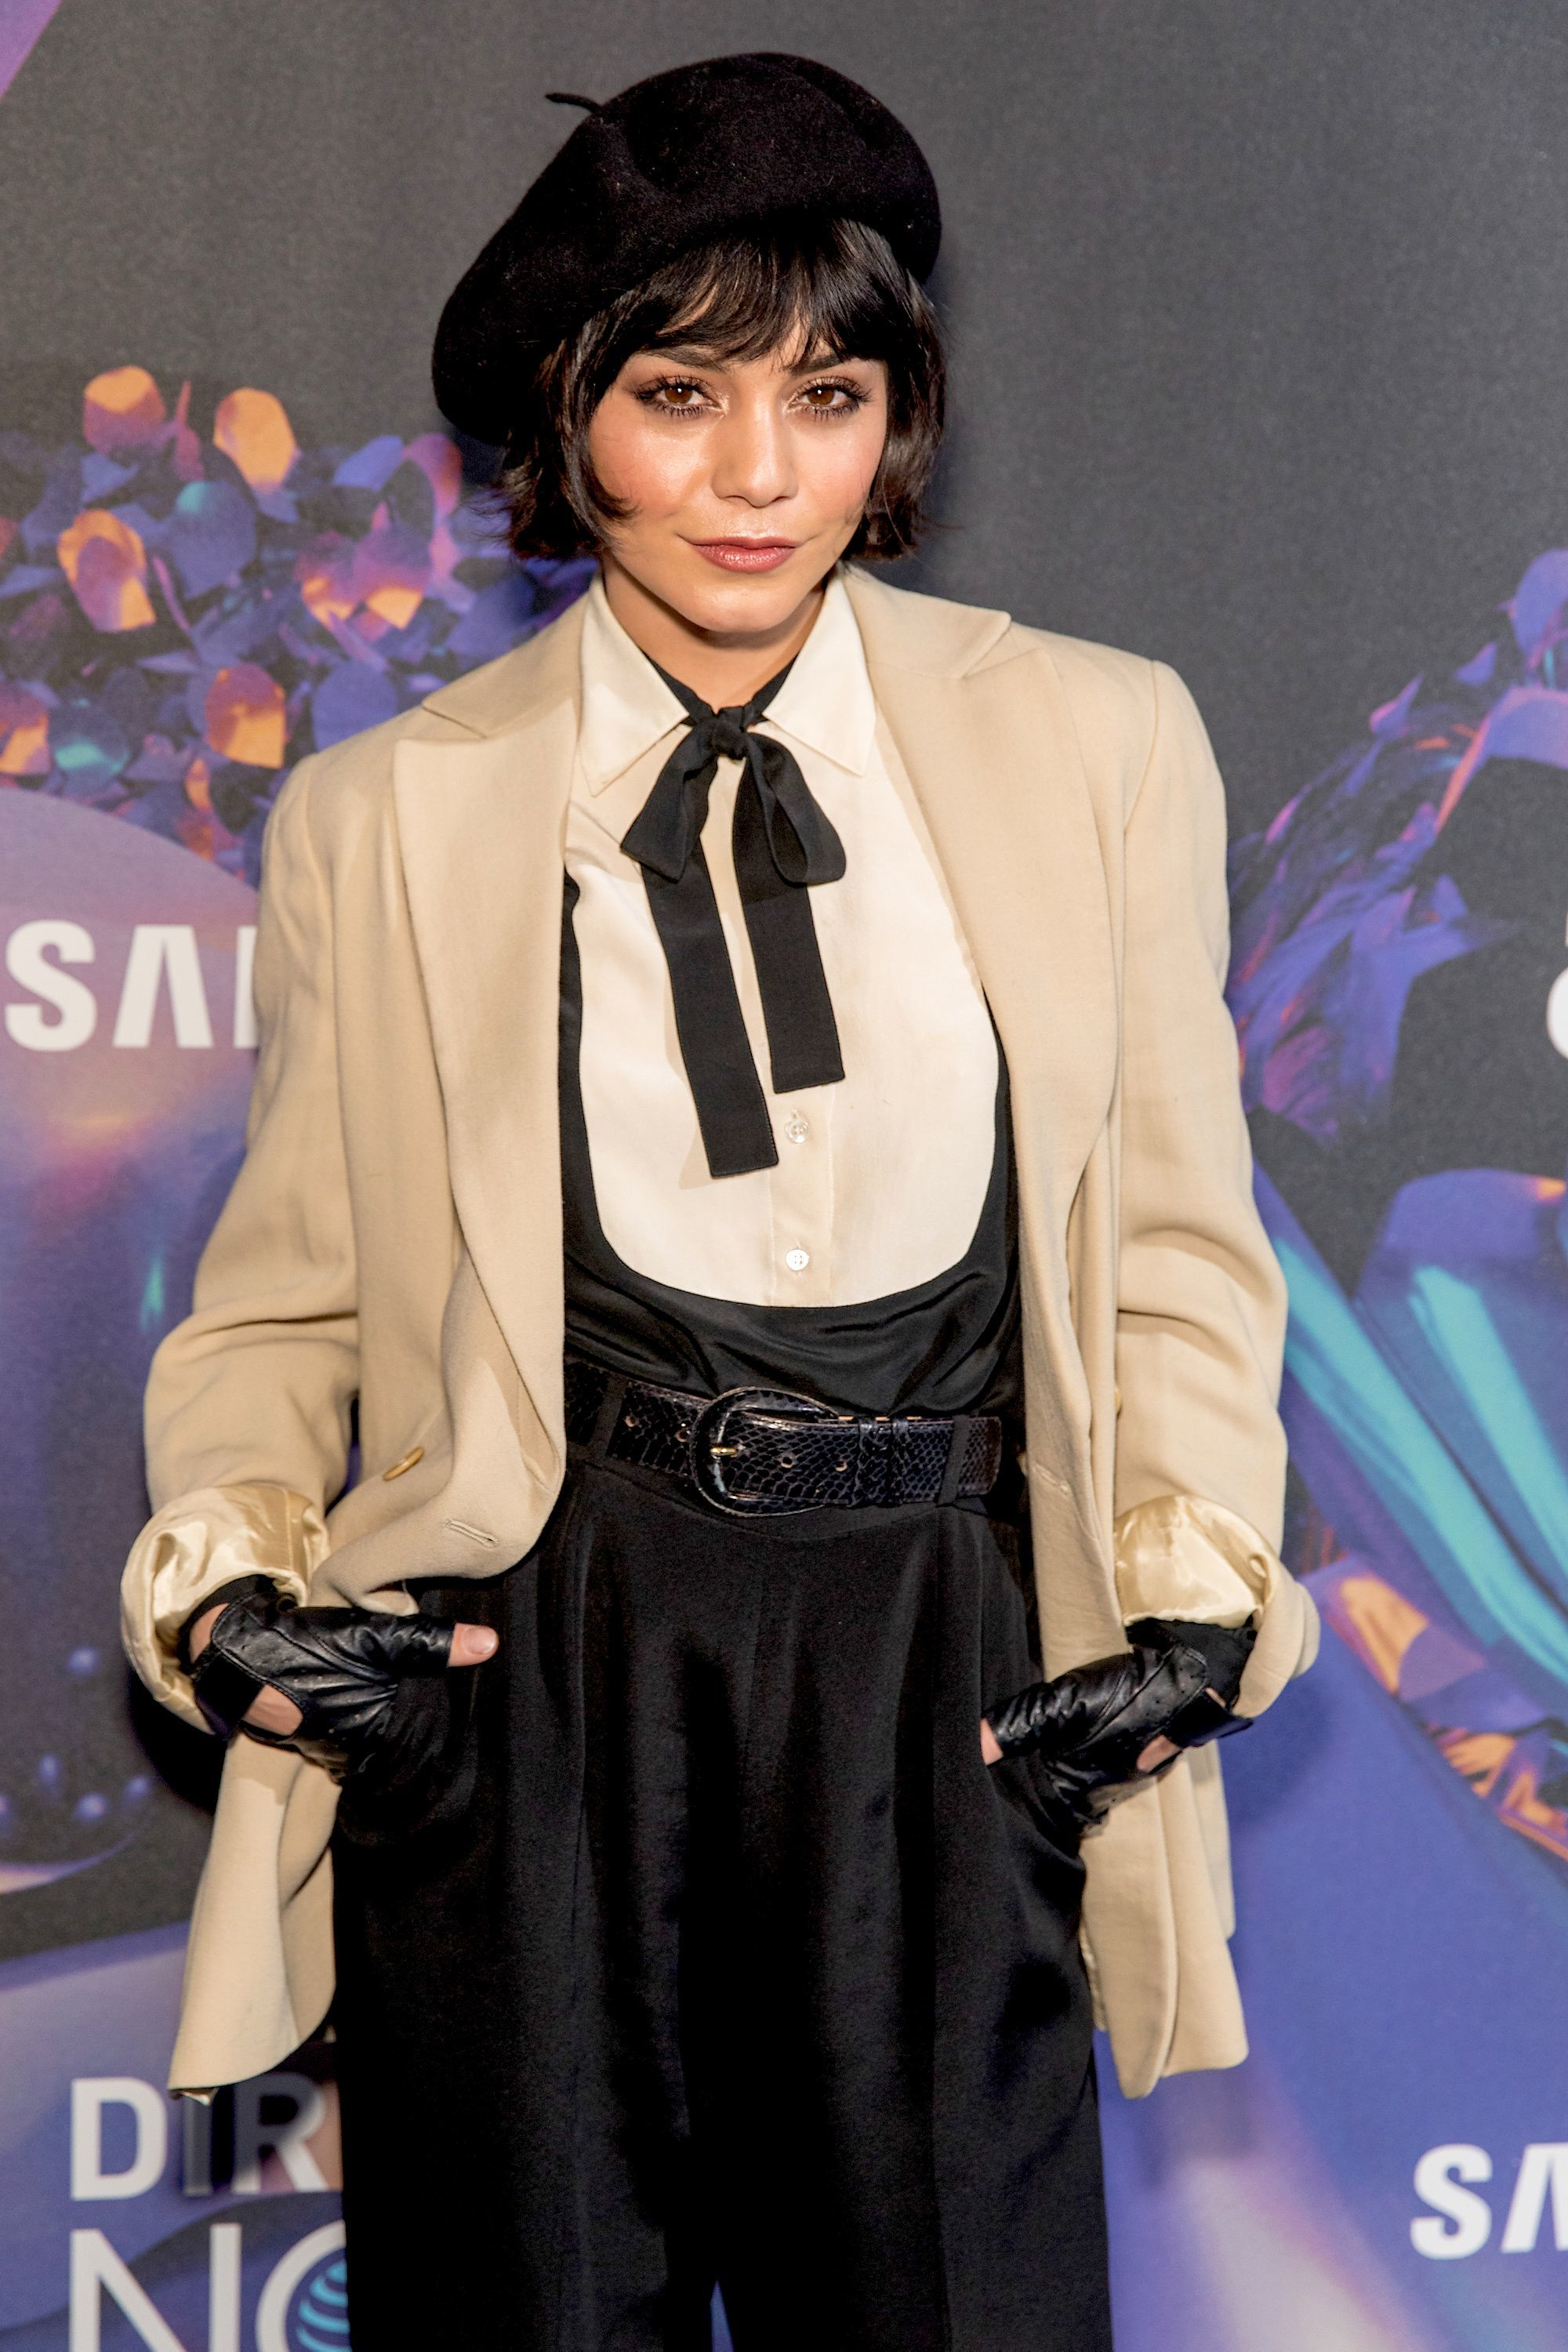 vanessa hudgens with dark brown bob and bangs chanel haircut with black beret and suit